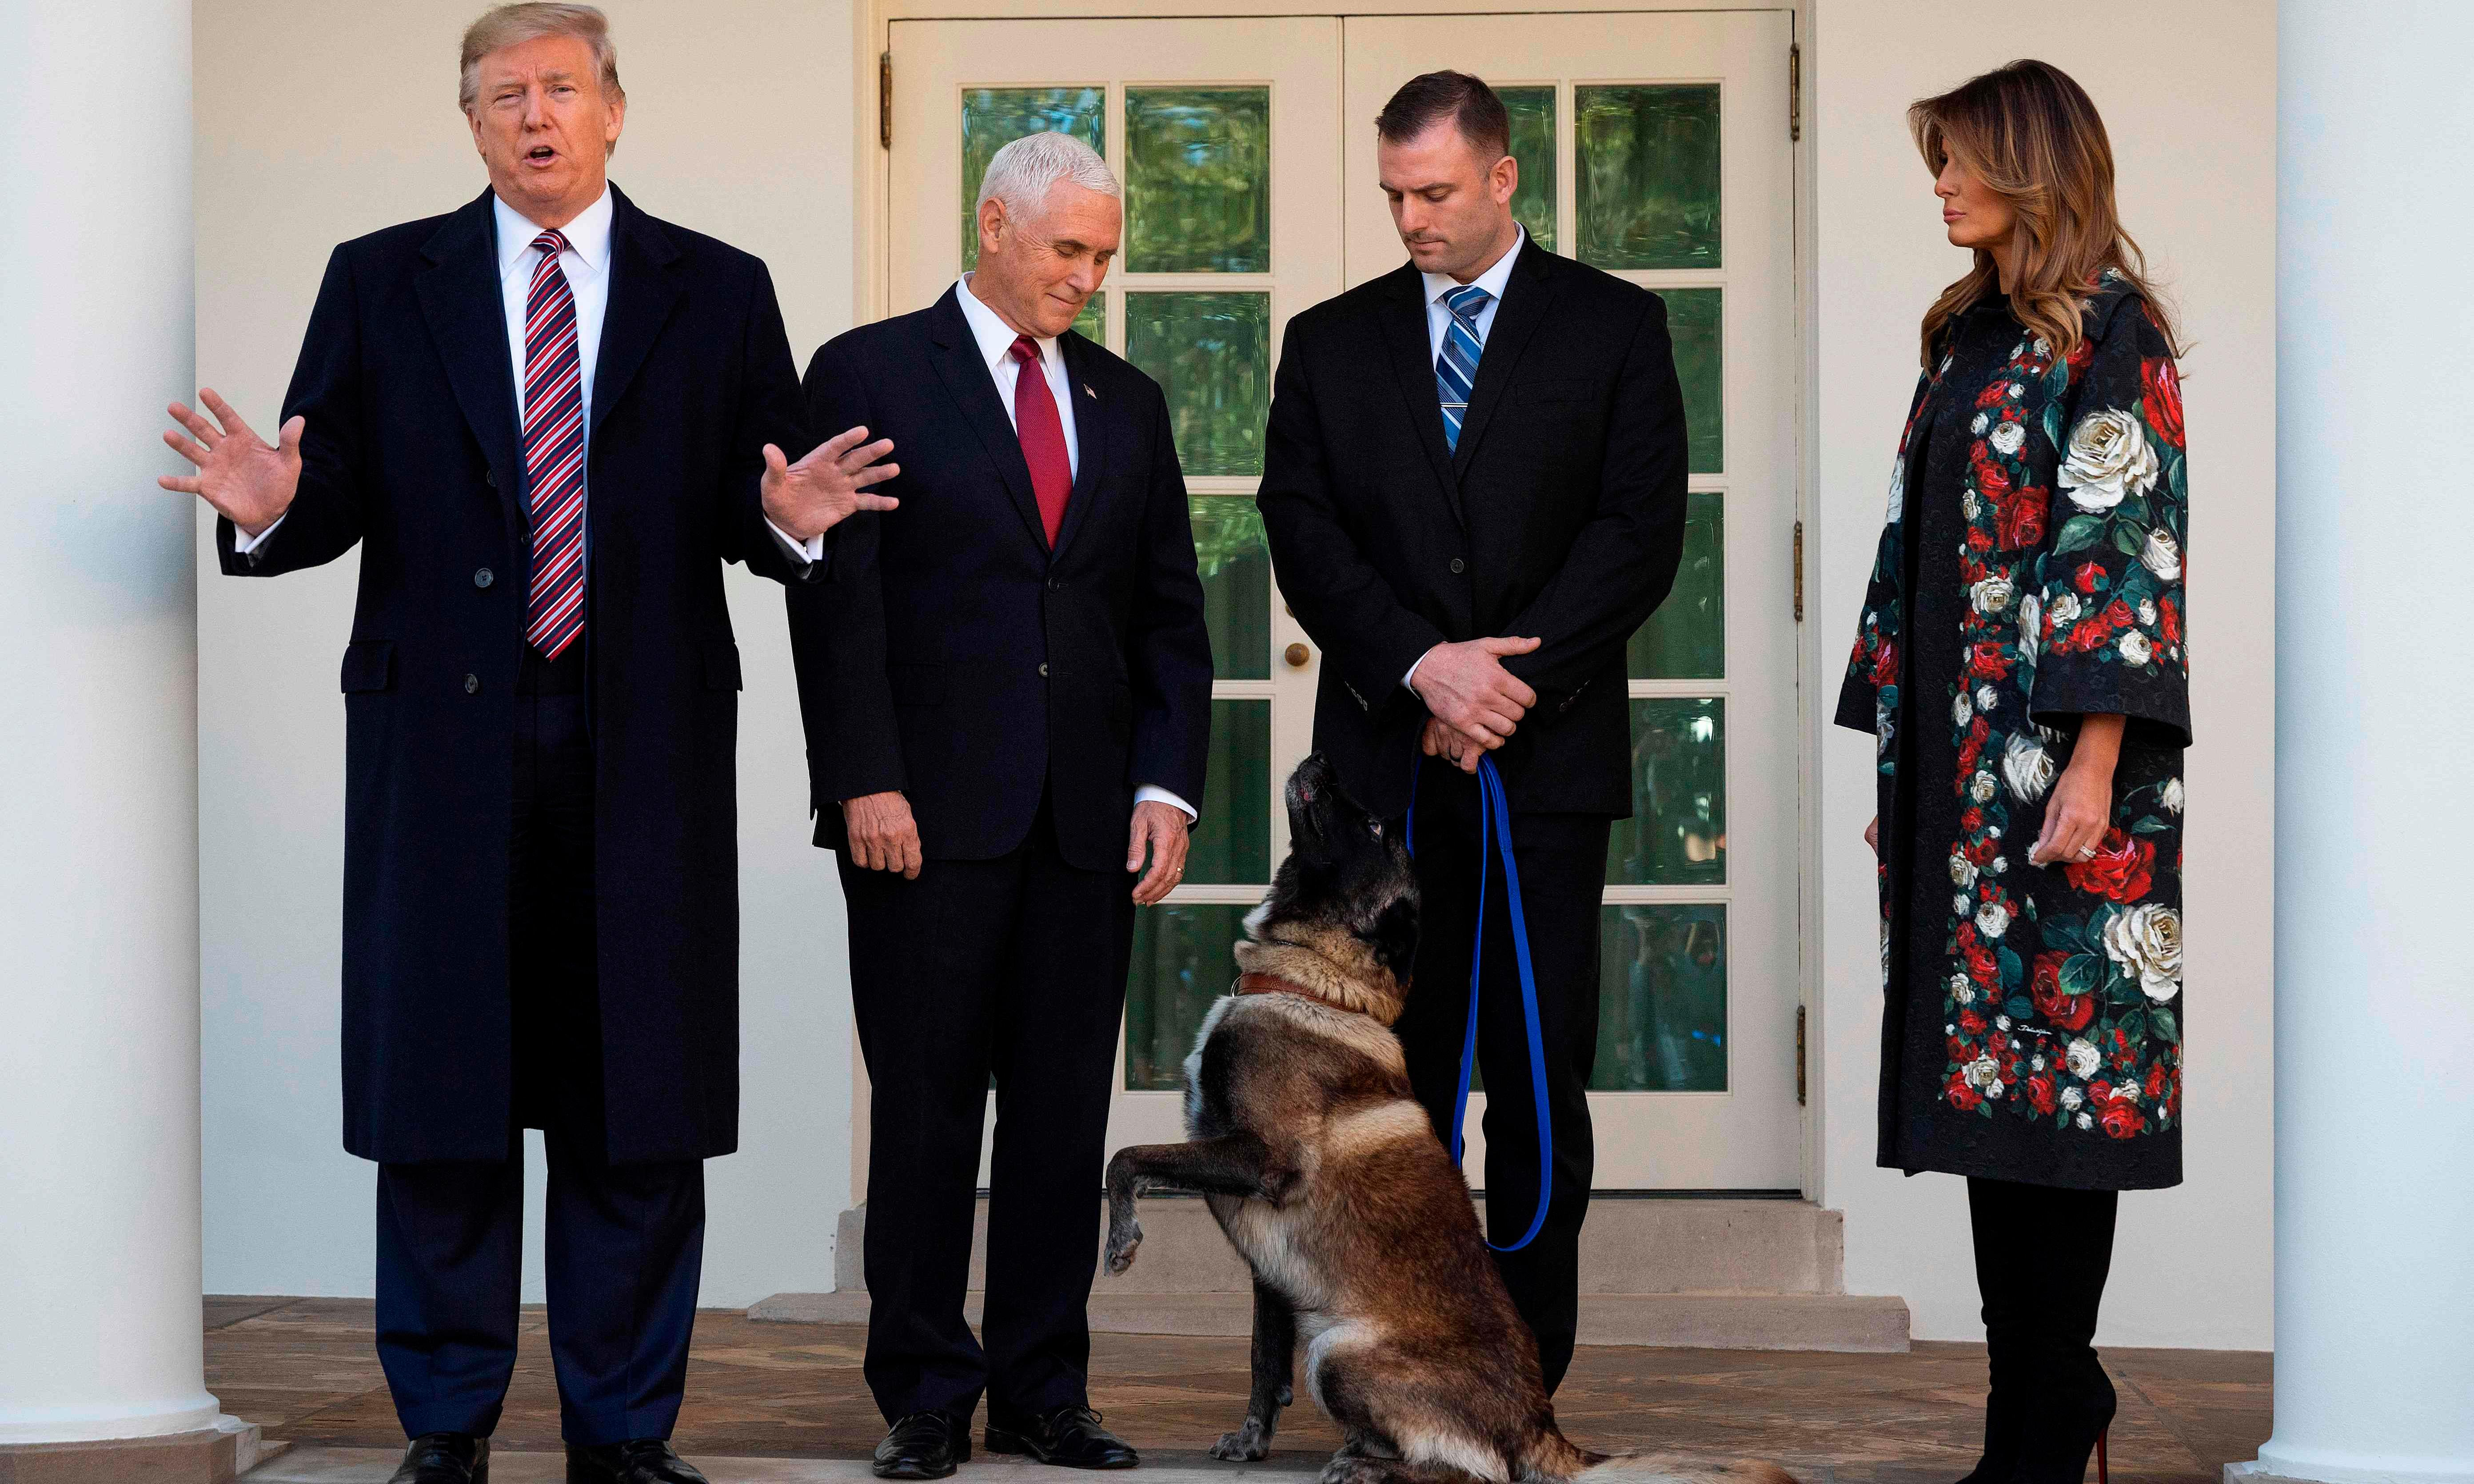 Down, boy: how Trump and Conan got embroiled in dog gender controversy